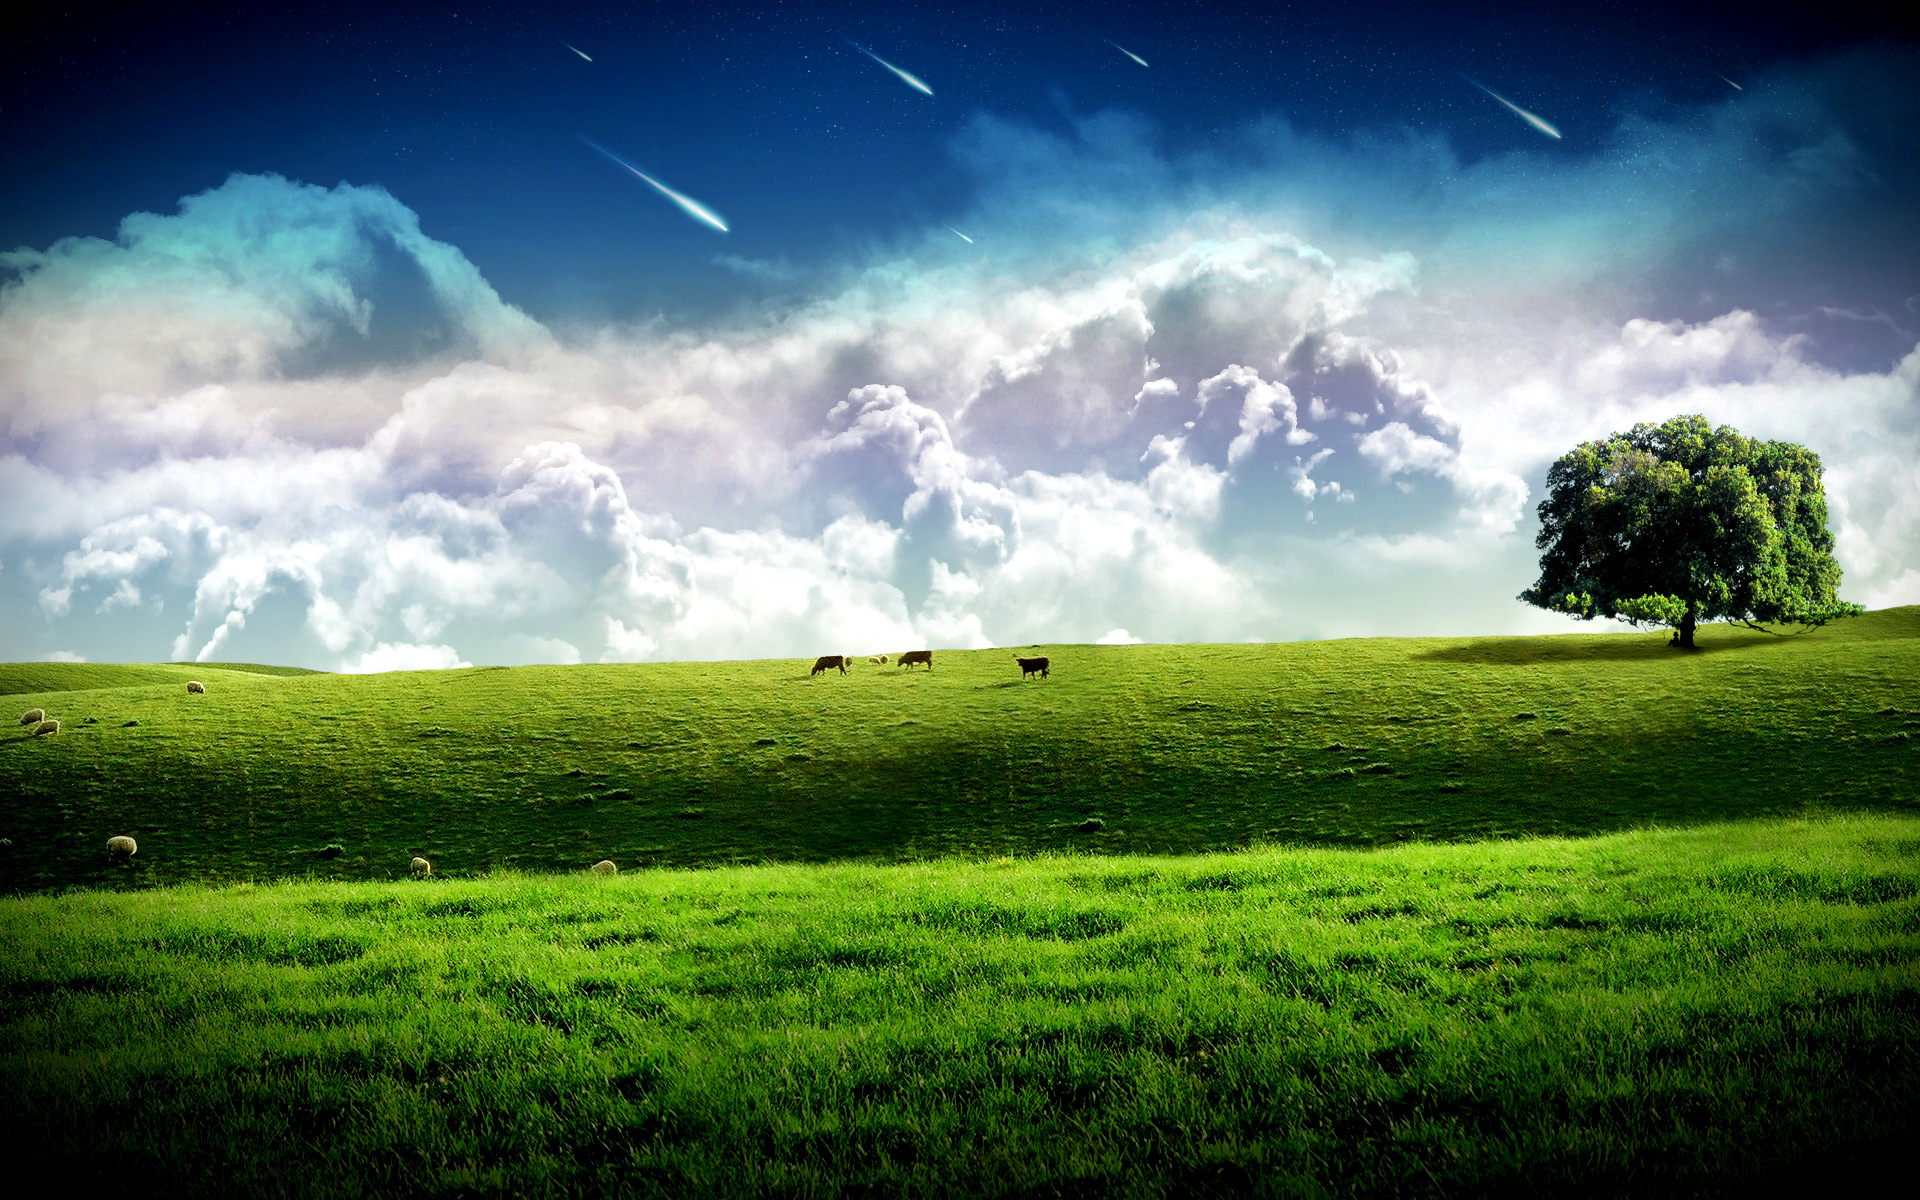 Earth - Artistic  Field Wallpaper